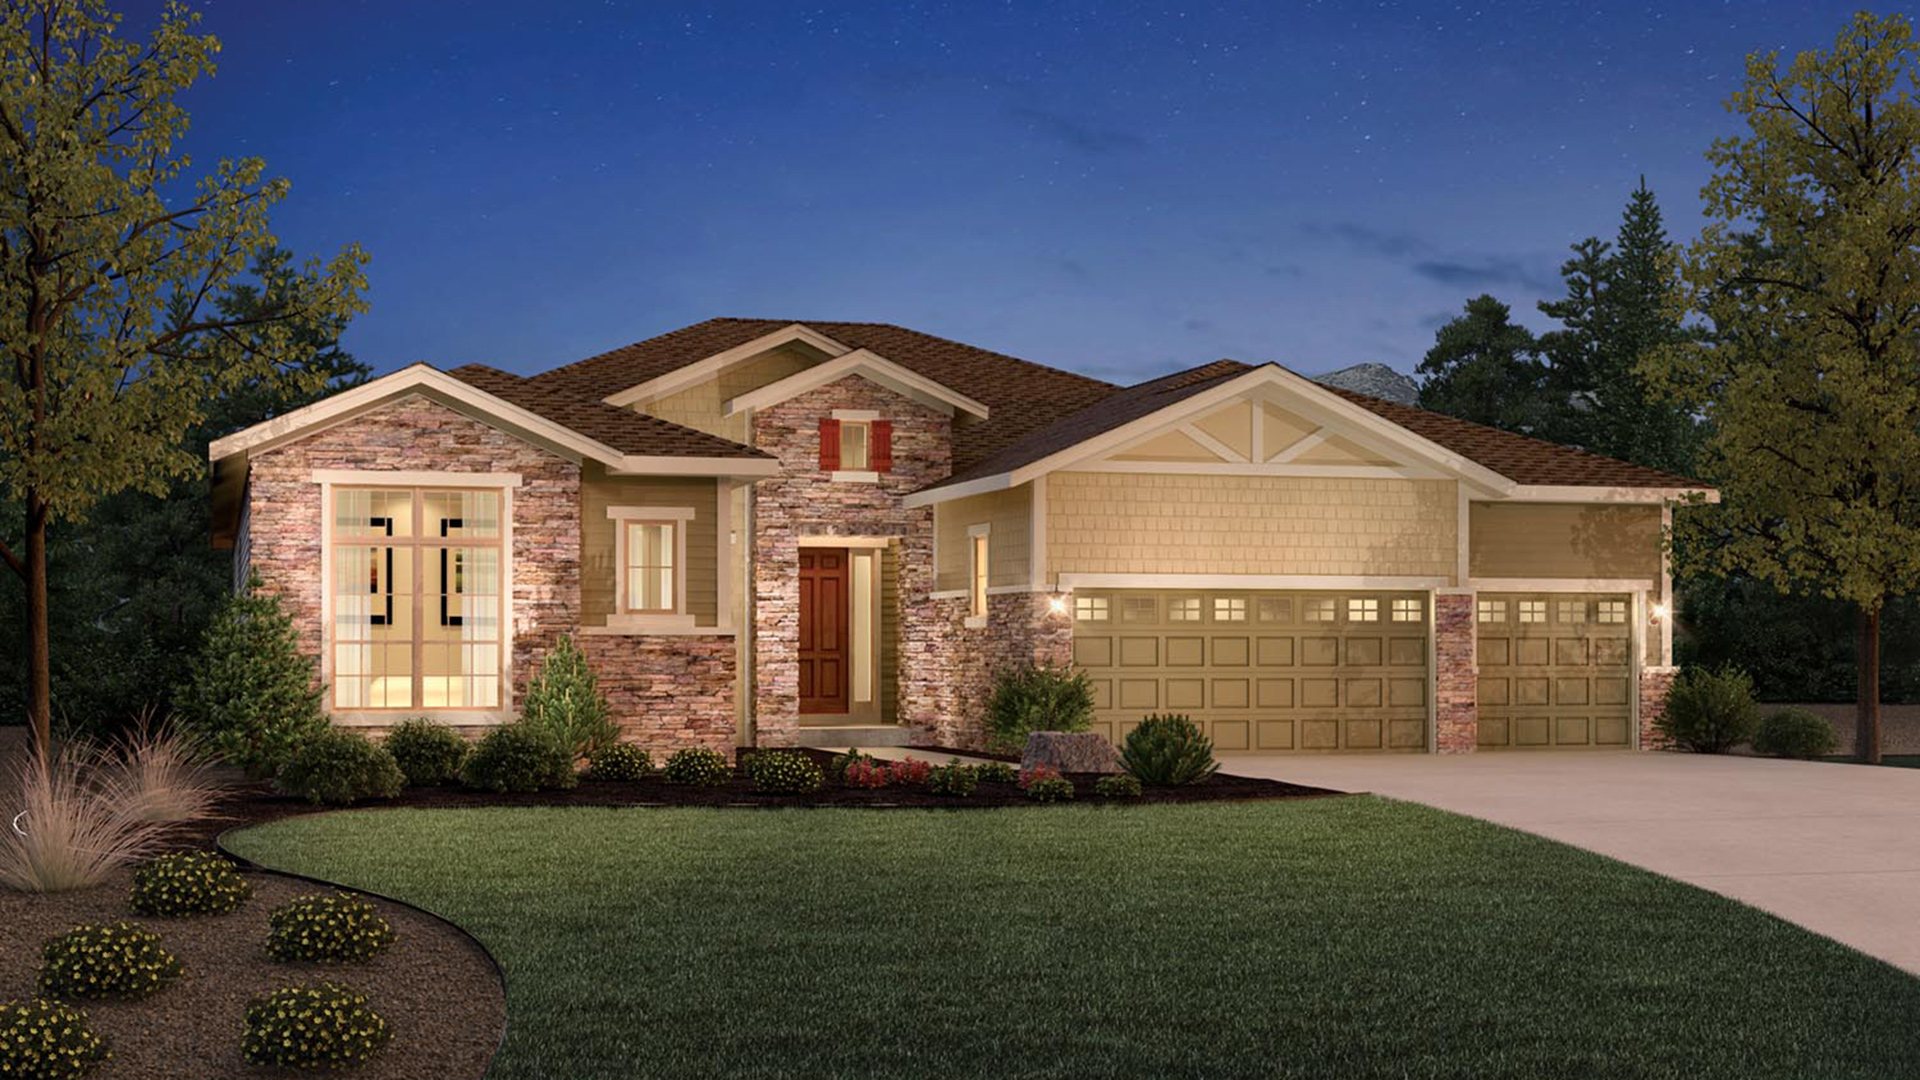 Toll brothers at inspiration boulder collection quick for Luxury home models